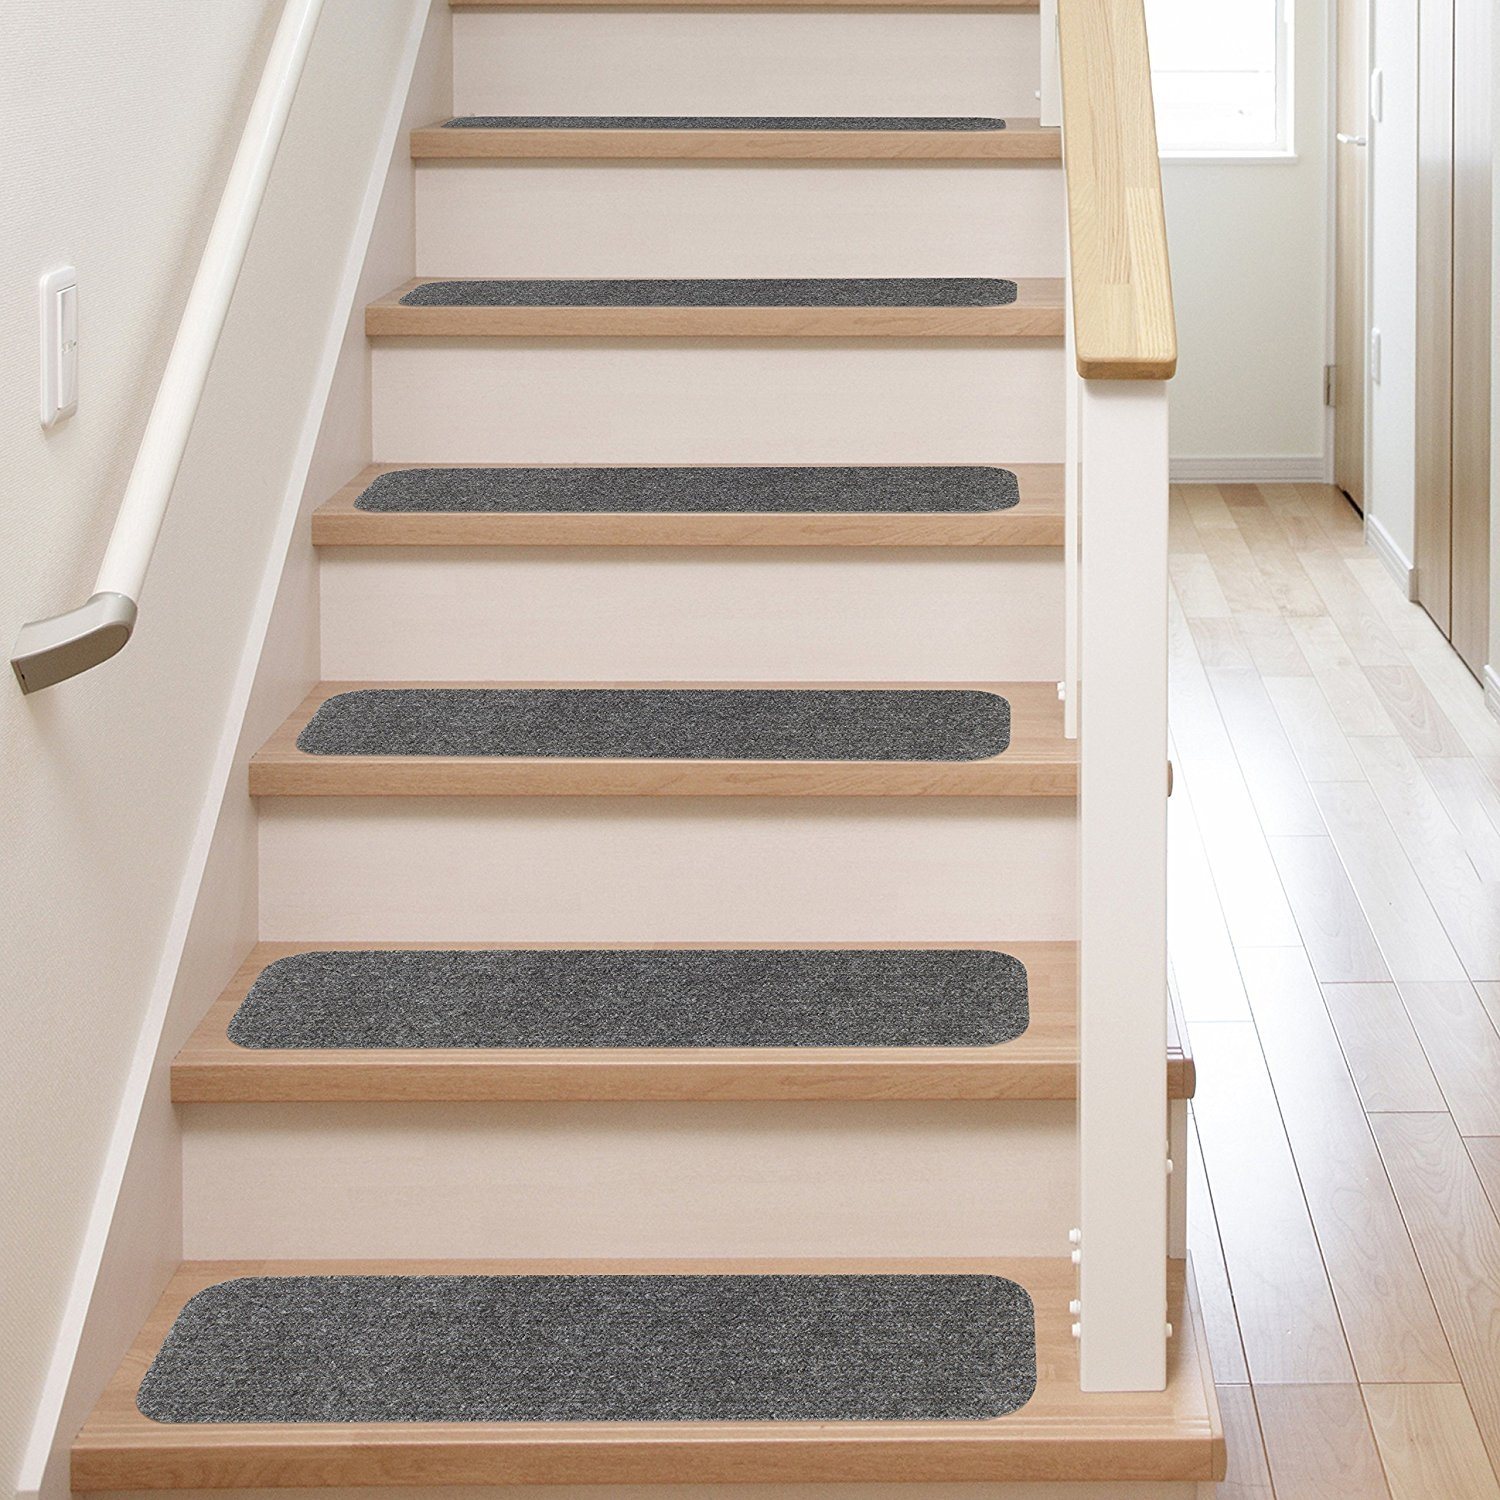 Popular Photo of Stair Slip Guards